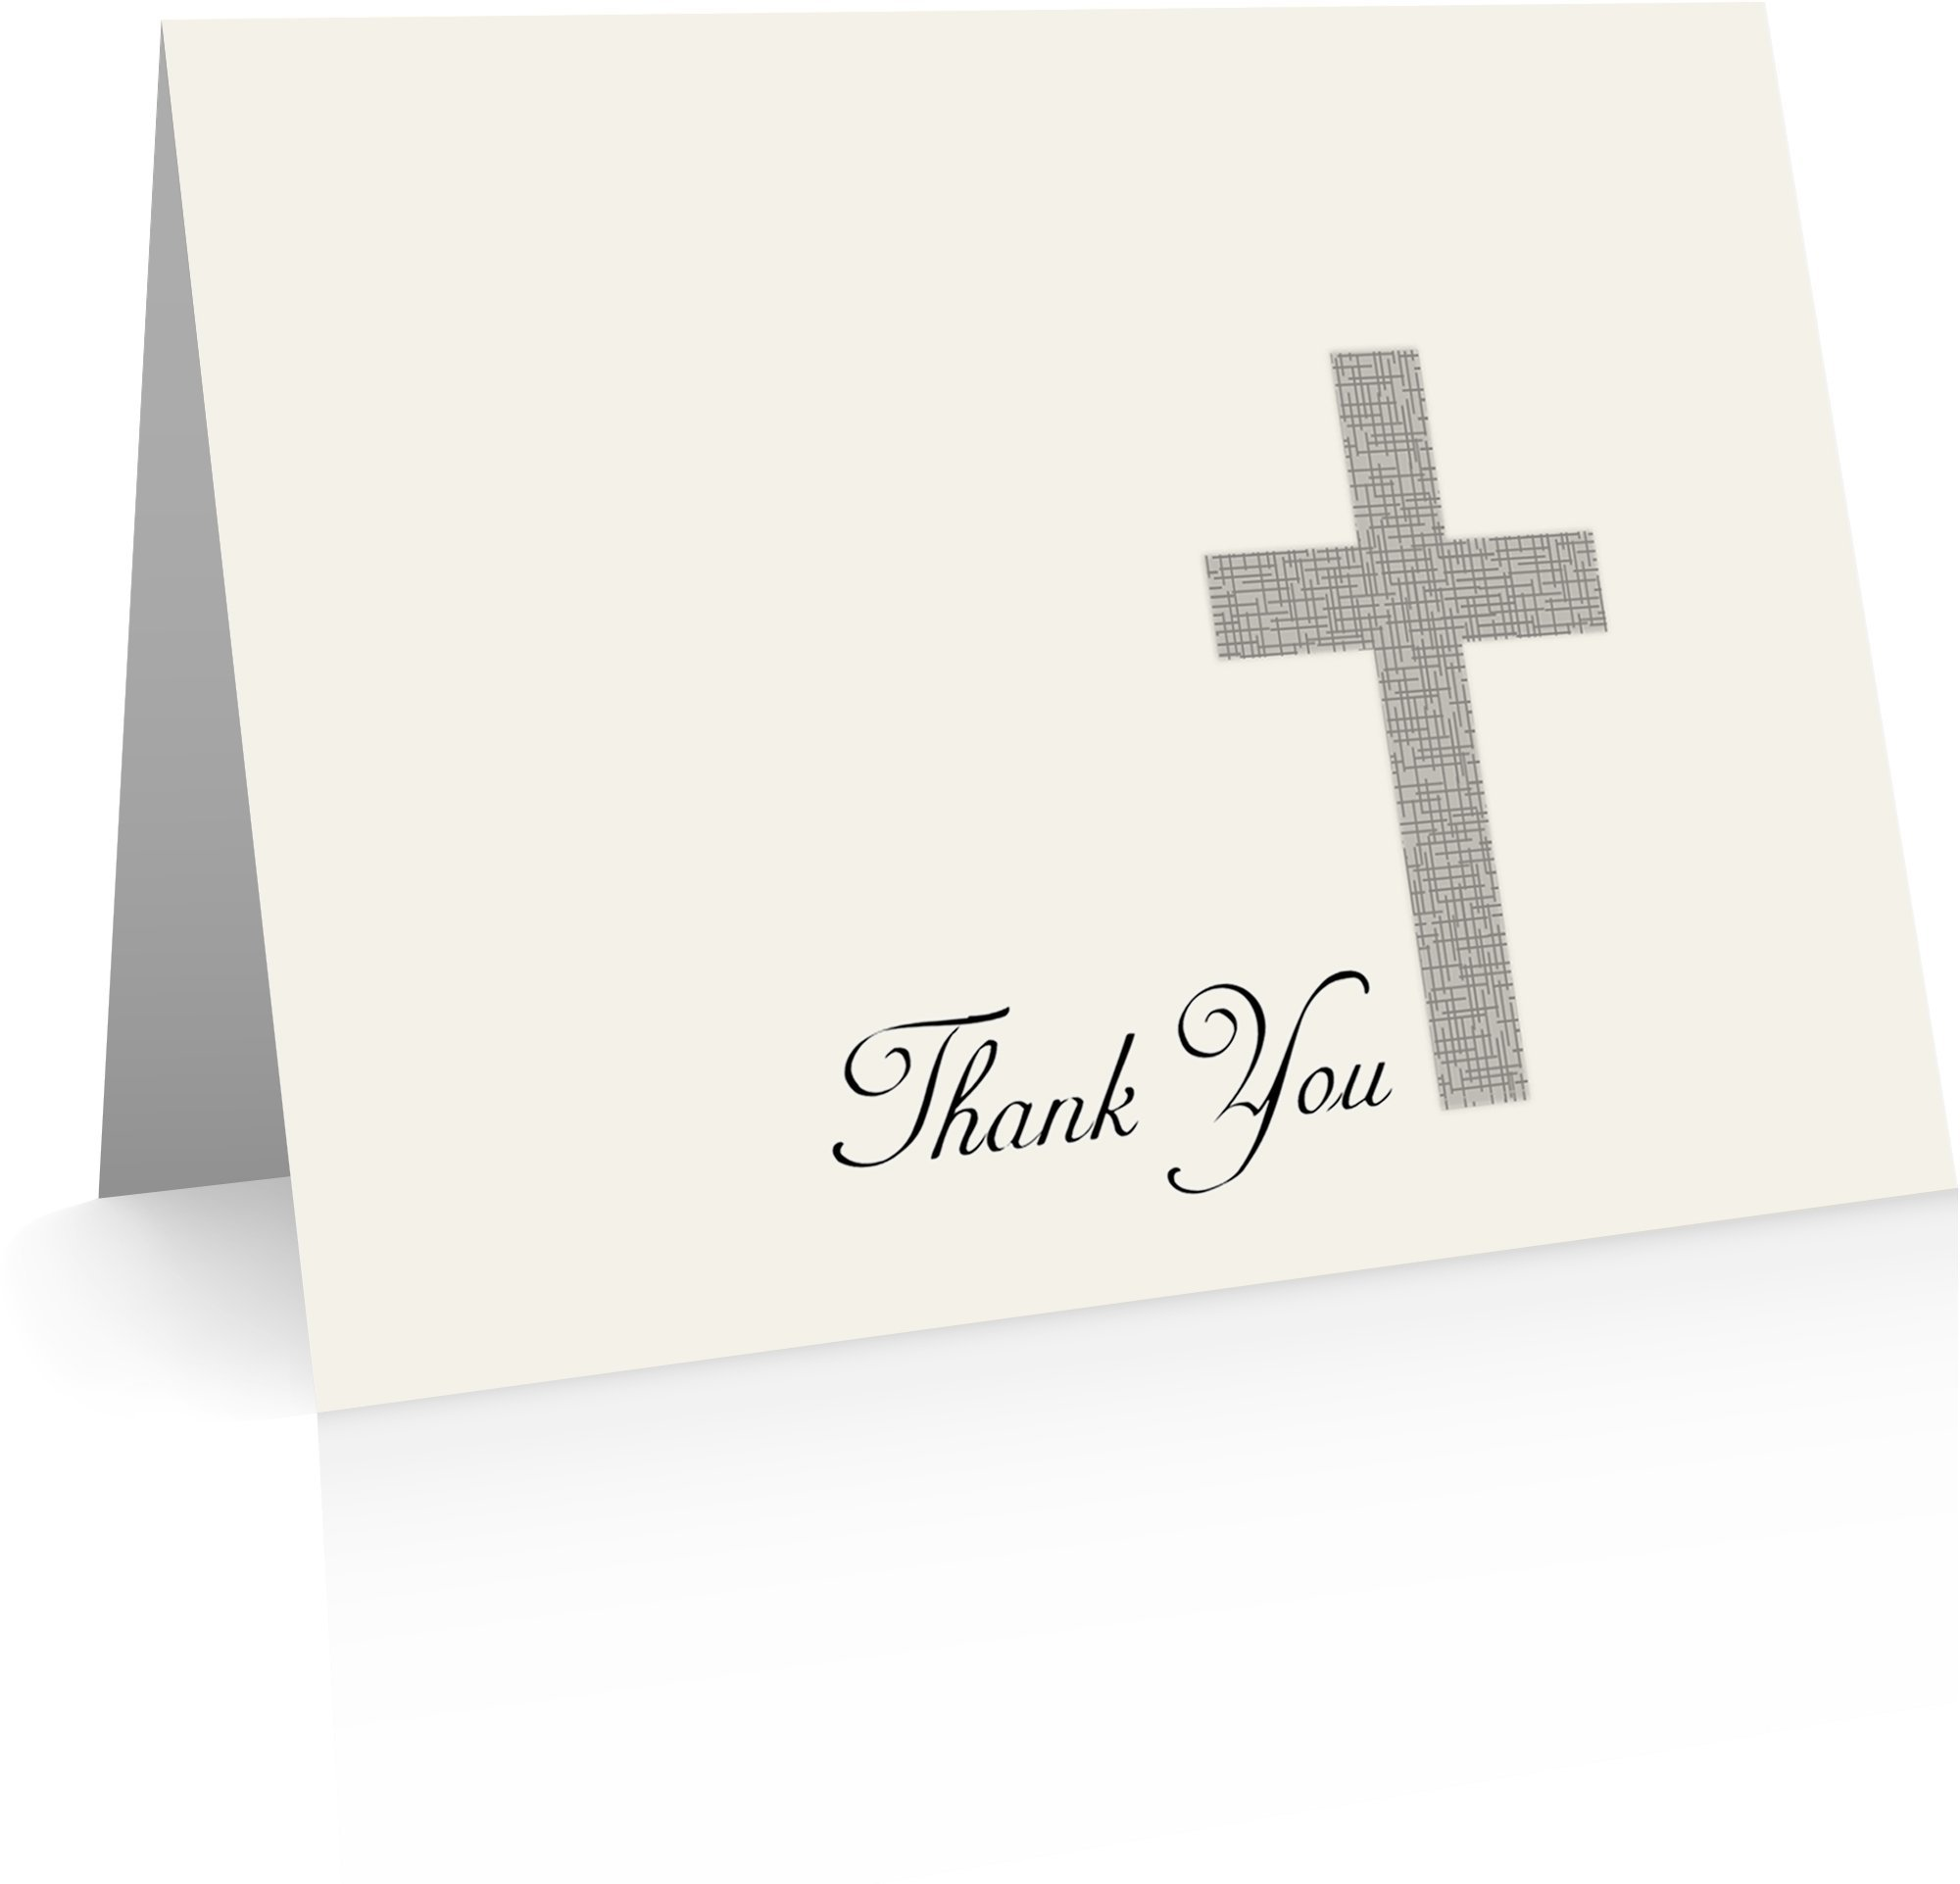 Christian Thank You Cards (24 Foldover Cards and Envelopes) Christian Cards